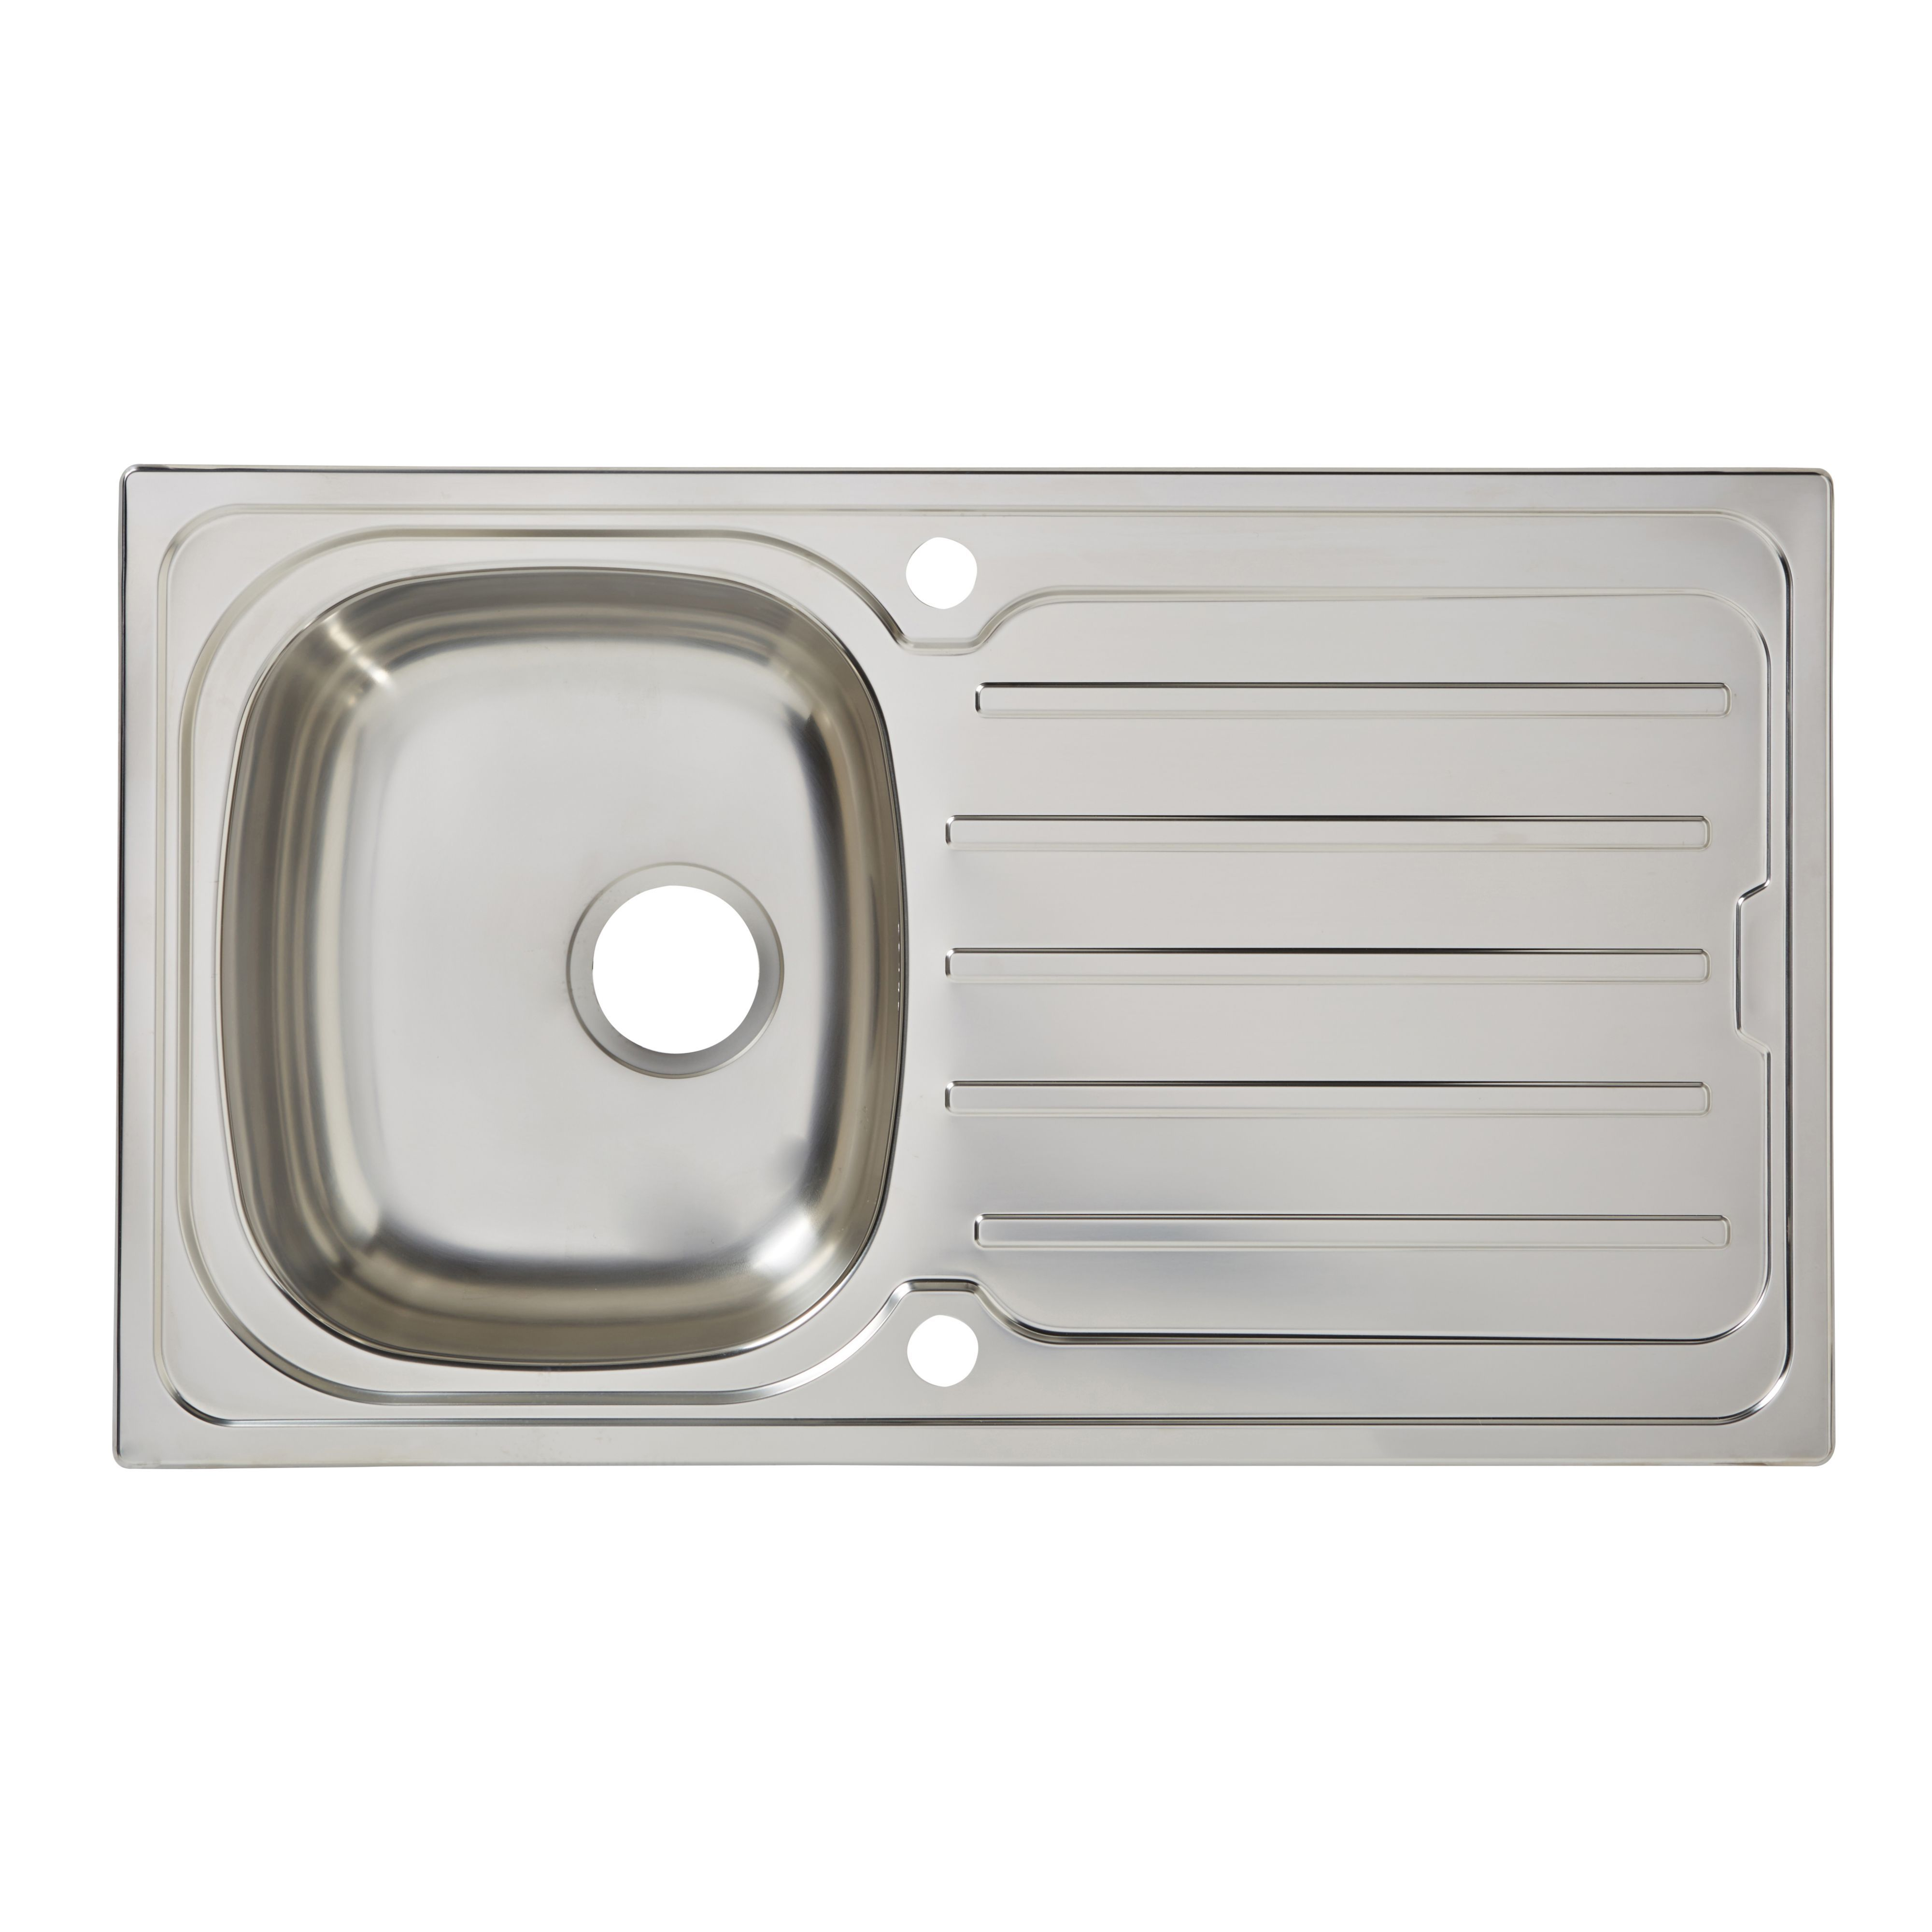 ... Polished Stainless Steel Sink & Drainer Departments DIY at B&Q